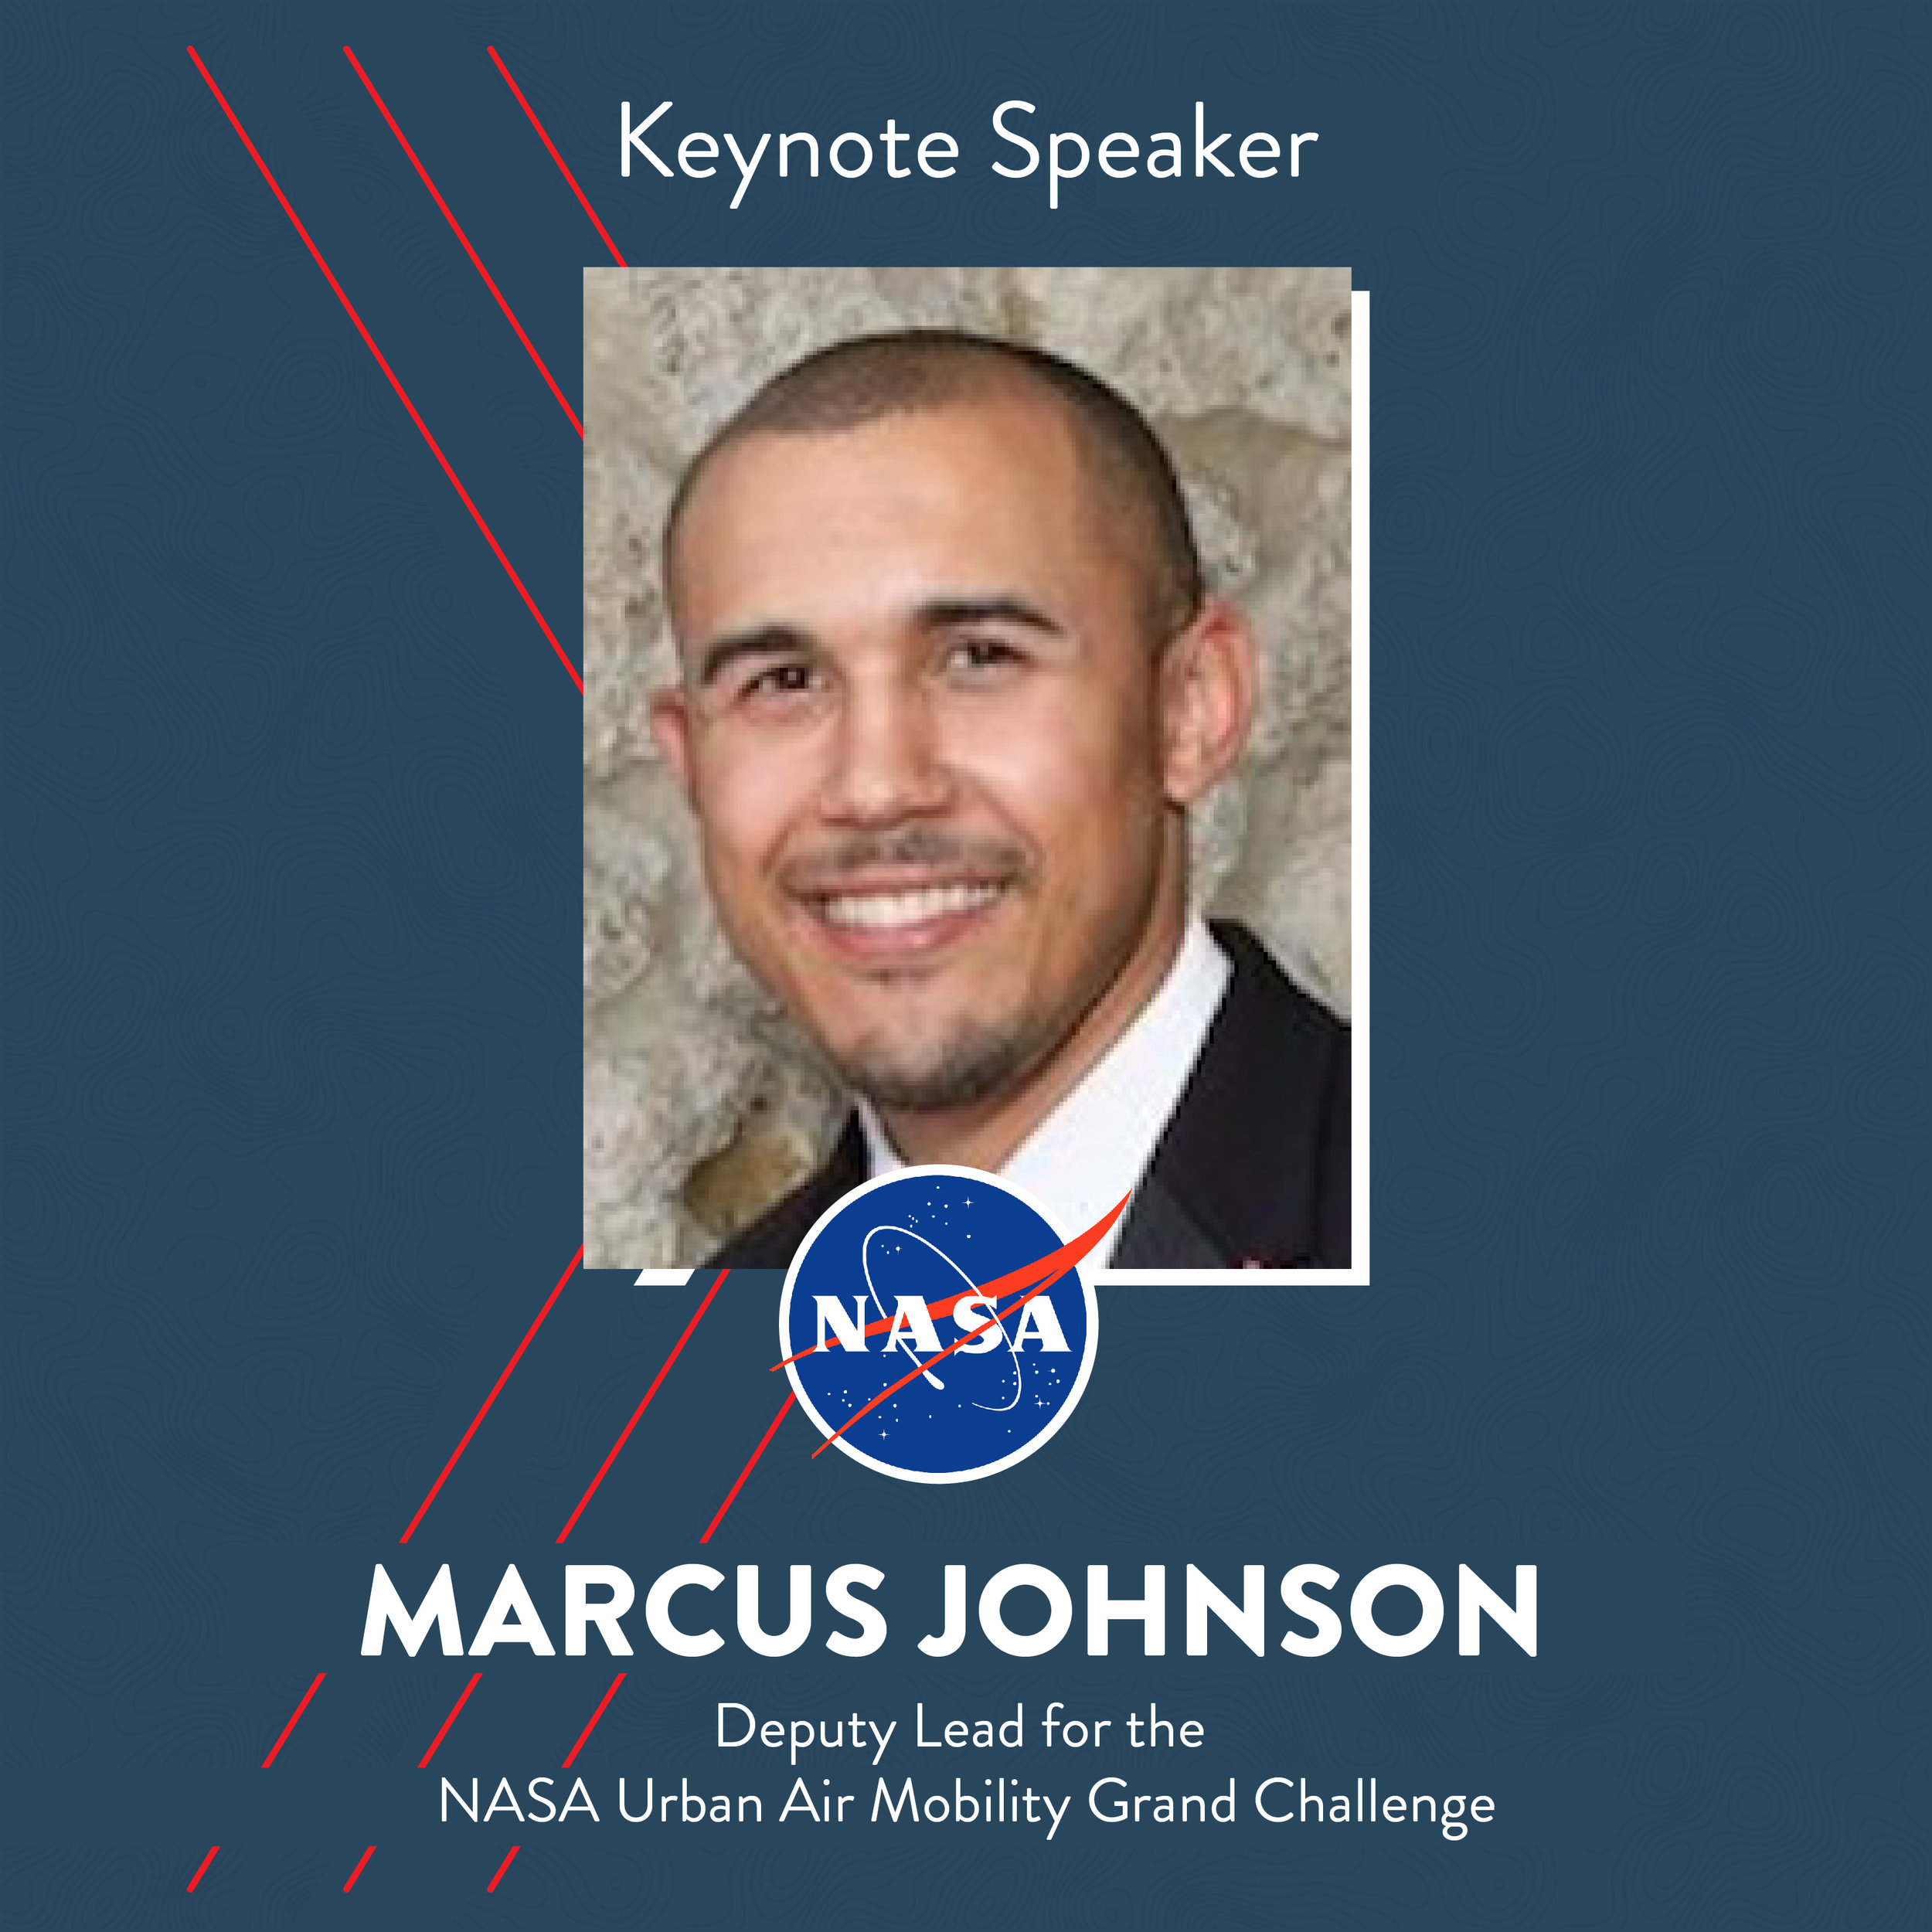 Dr. Marcus Johnson is a Deputy Lead for the NASA Urban Air Mobility Grand Challenge and has also served as a Deputy Project Manager for the Unmanned Aircraft System (UAS) Traffic Management (UTM) Project at the NASA Ames Research Center. He holds a doctorate in Aerospace Engineering from the University of Florida and his research interests focus on intelligent systems in aerospace applications and the integration of novel and new aircraft into the national airspace.